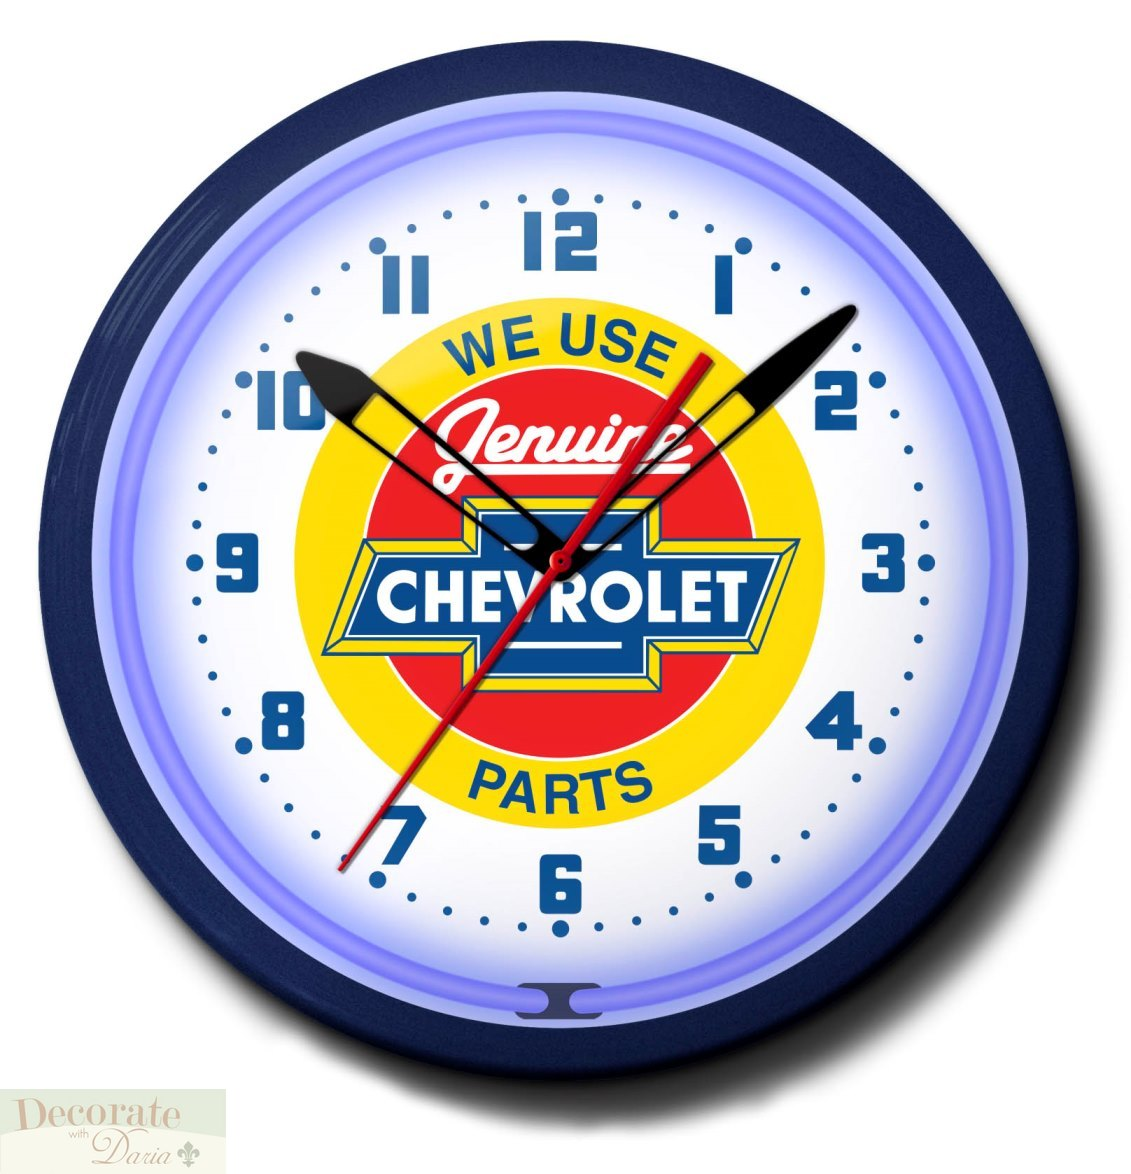 Chevrolet Genuine Parts Chevy Neon 20 Quot Wall Clock Made In The Usa